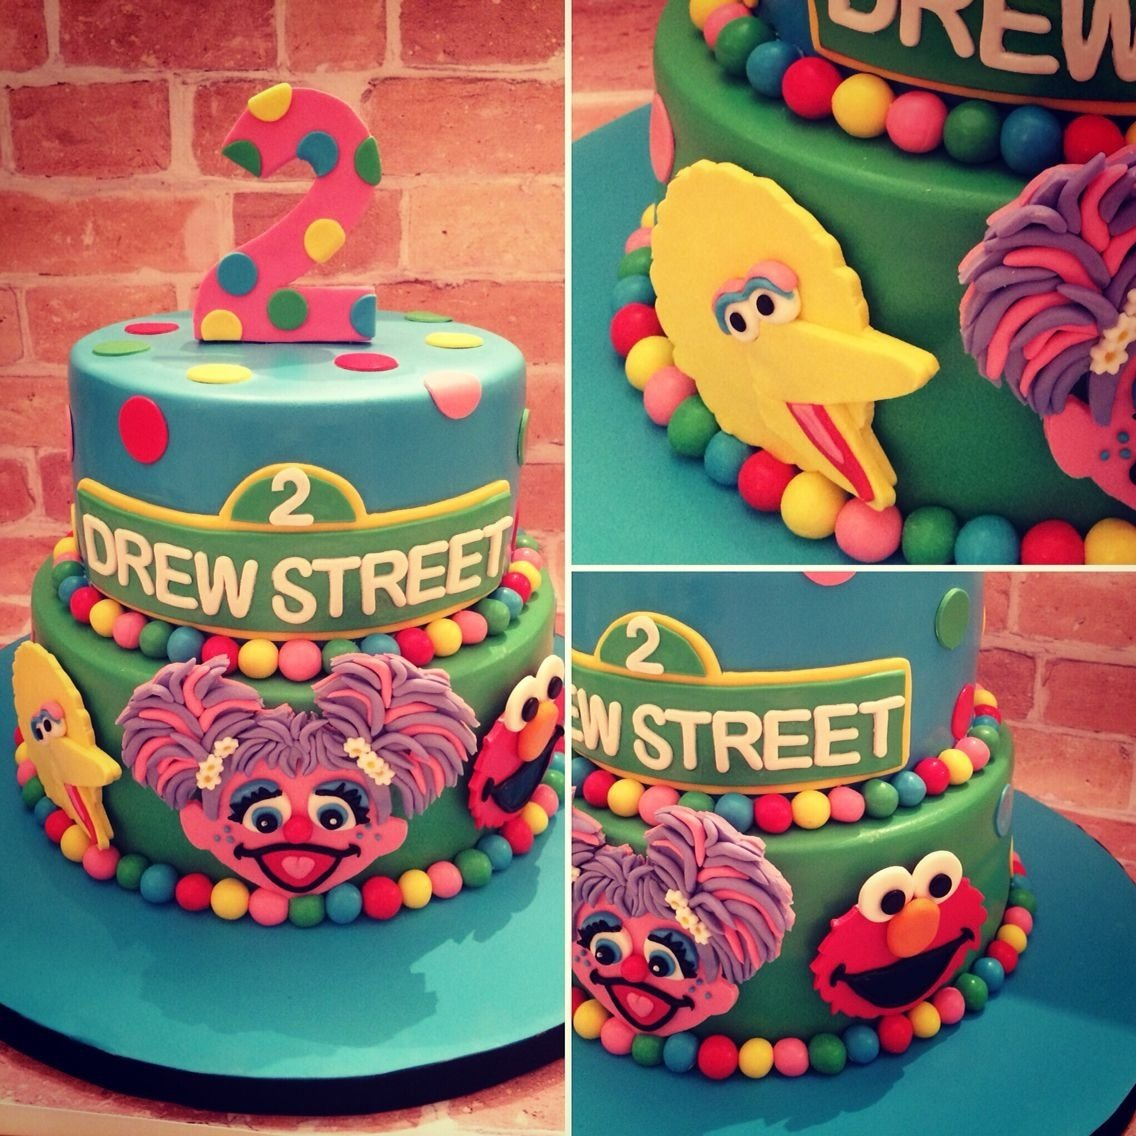 10 Great Elmo 2Nd Birthday Party Ideas Sesame Street Themed Cake For A 2yr Old